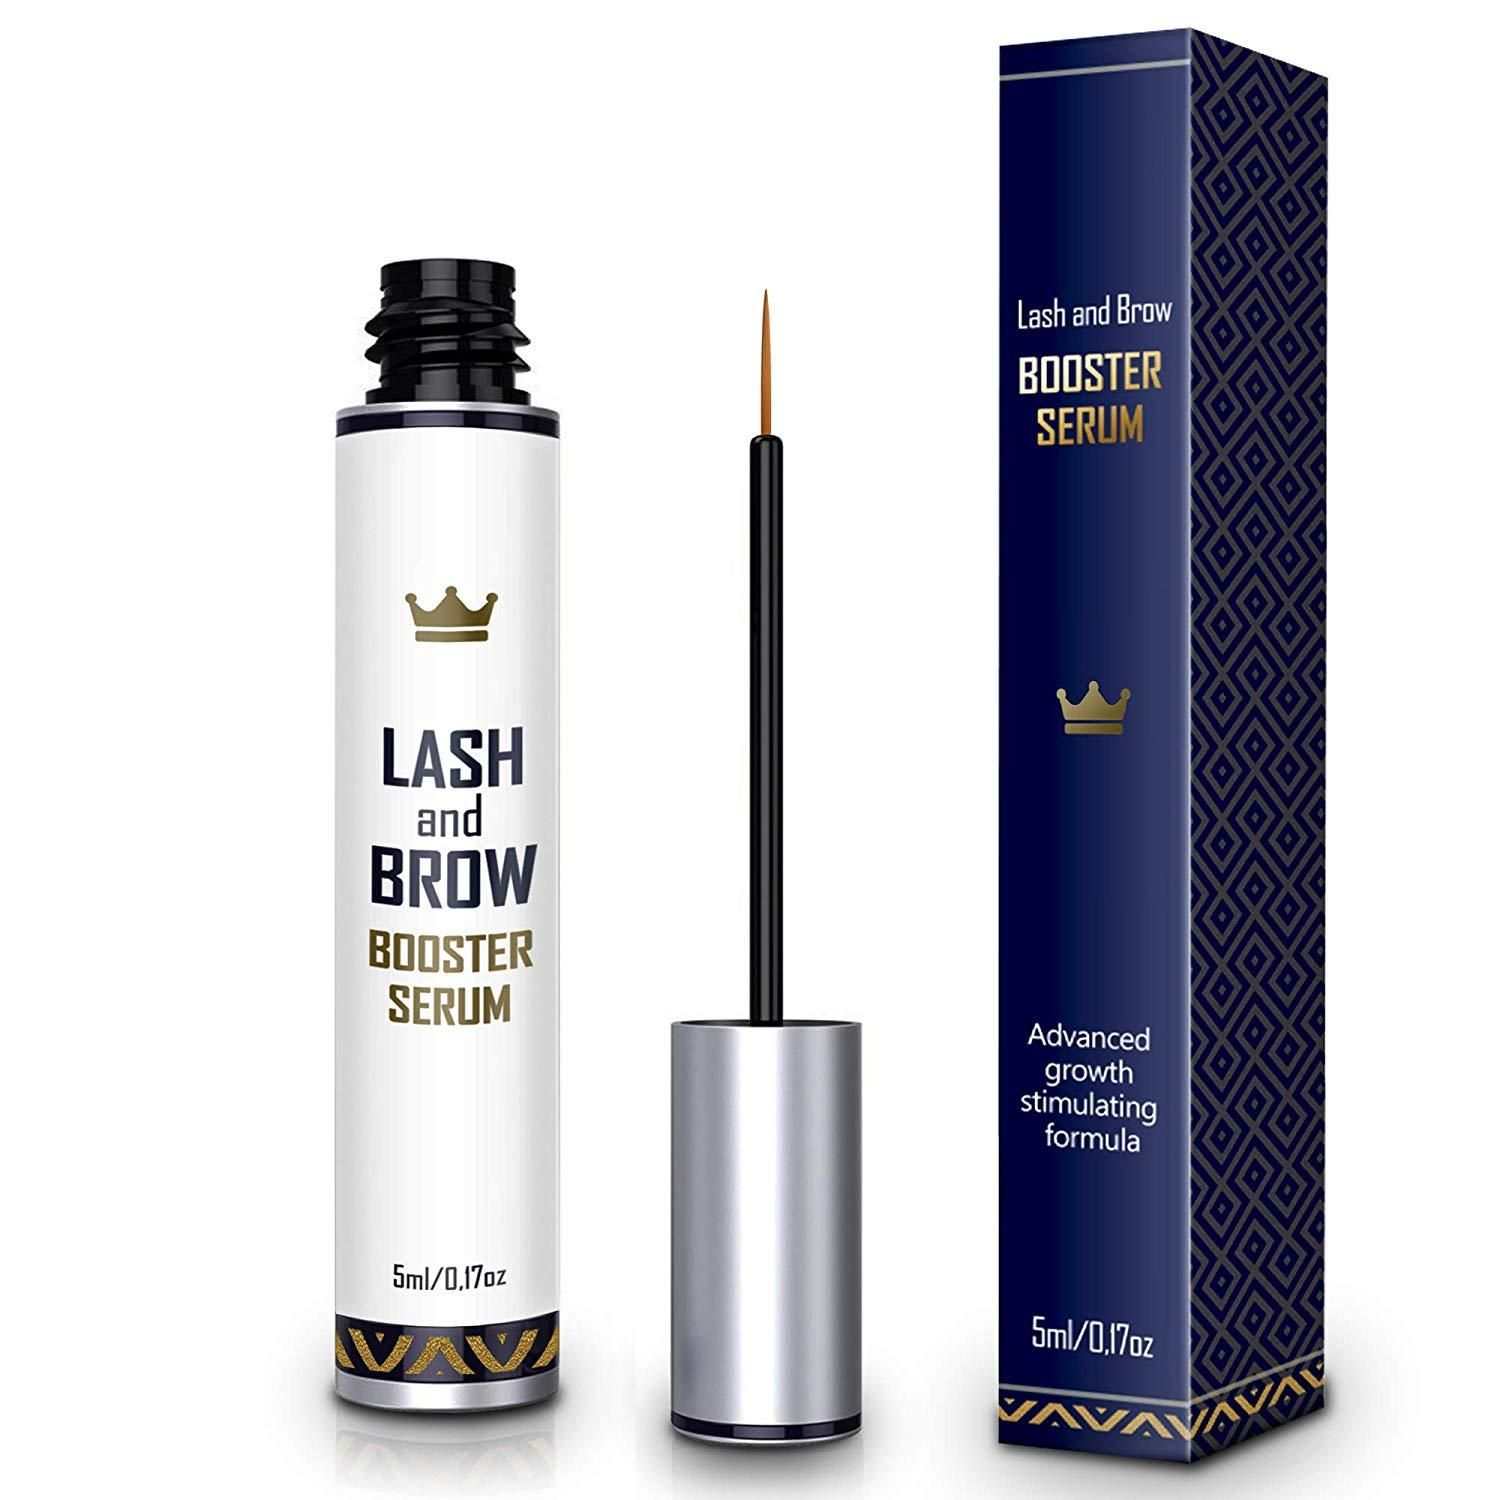 f0a2121ef60 Natural Lash Growth Serum - USA Made Eyebrow Growth Enhancer - Eyelash  Booster to Grow Longer Eyelashes - Lash Boost & Brow Enhancing Serum